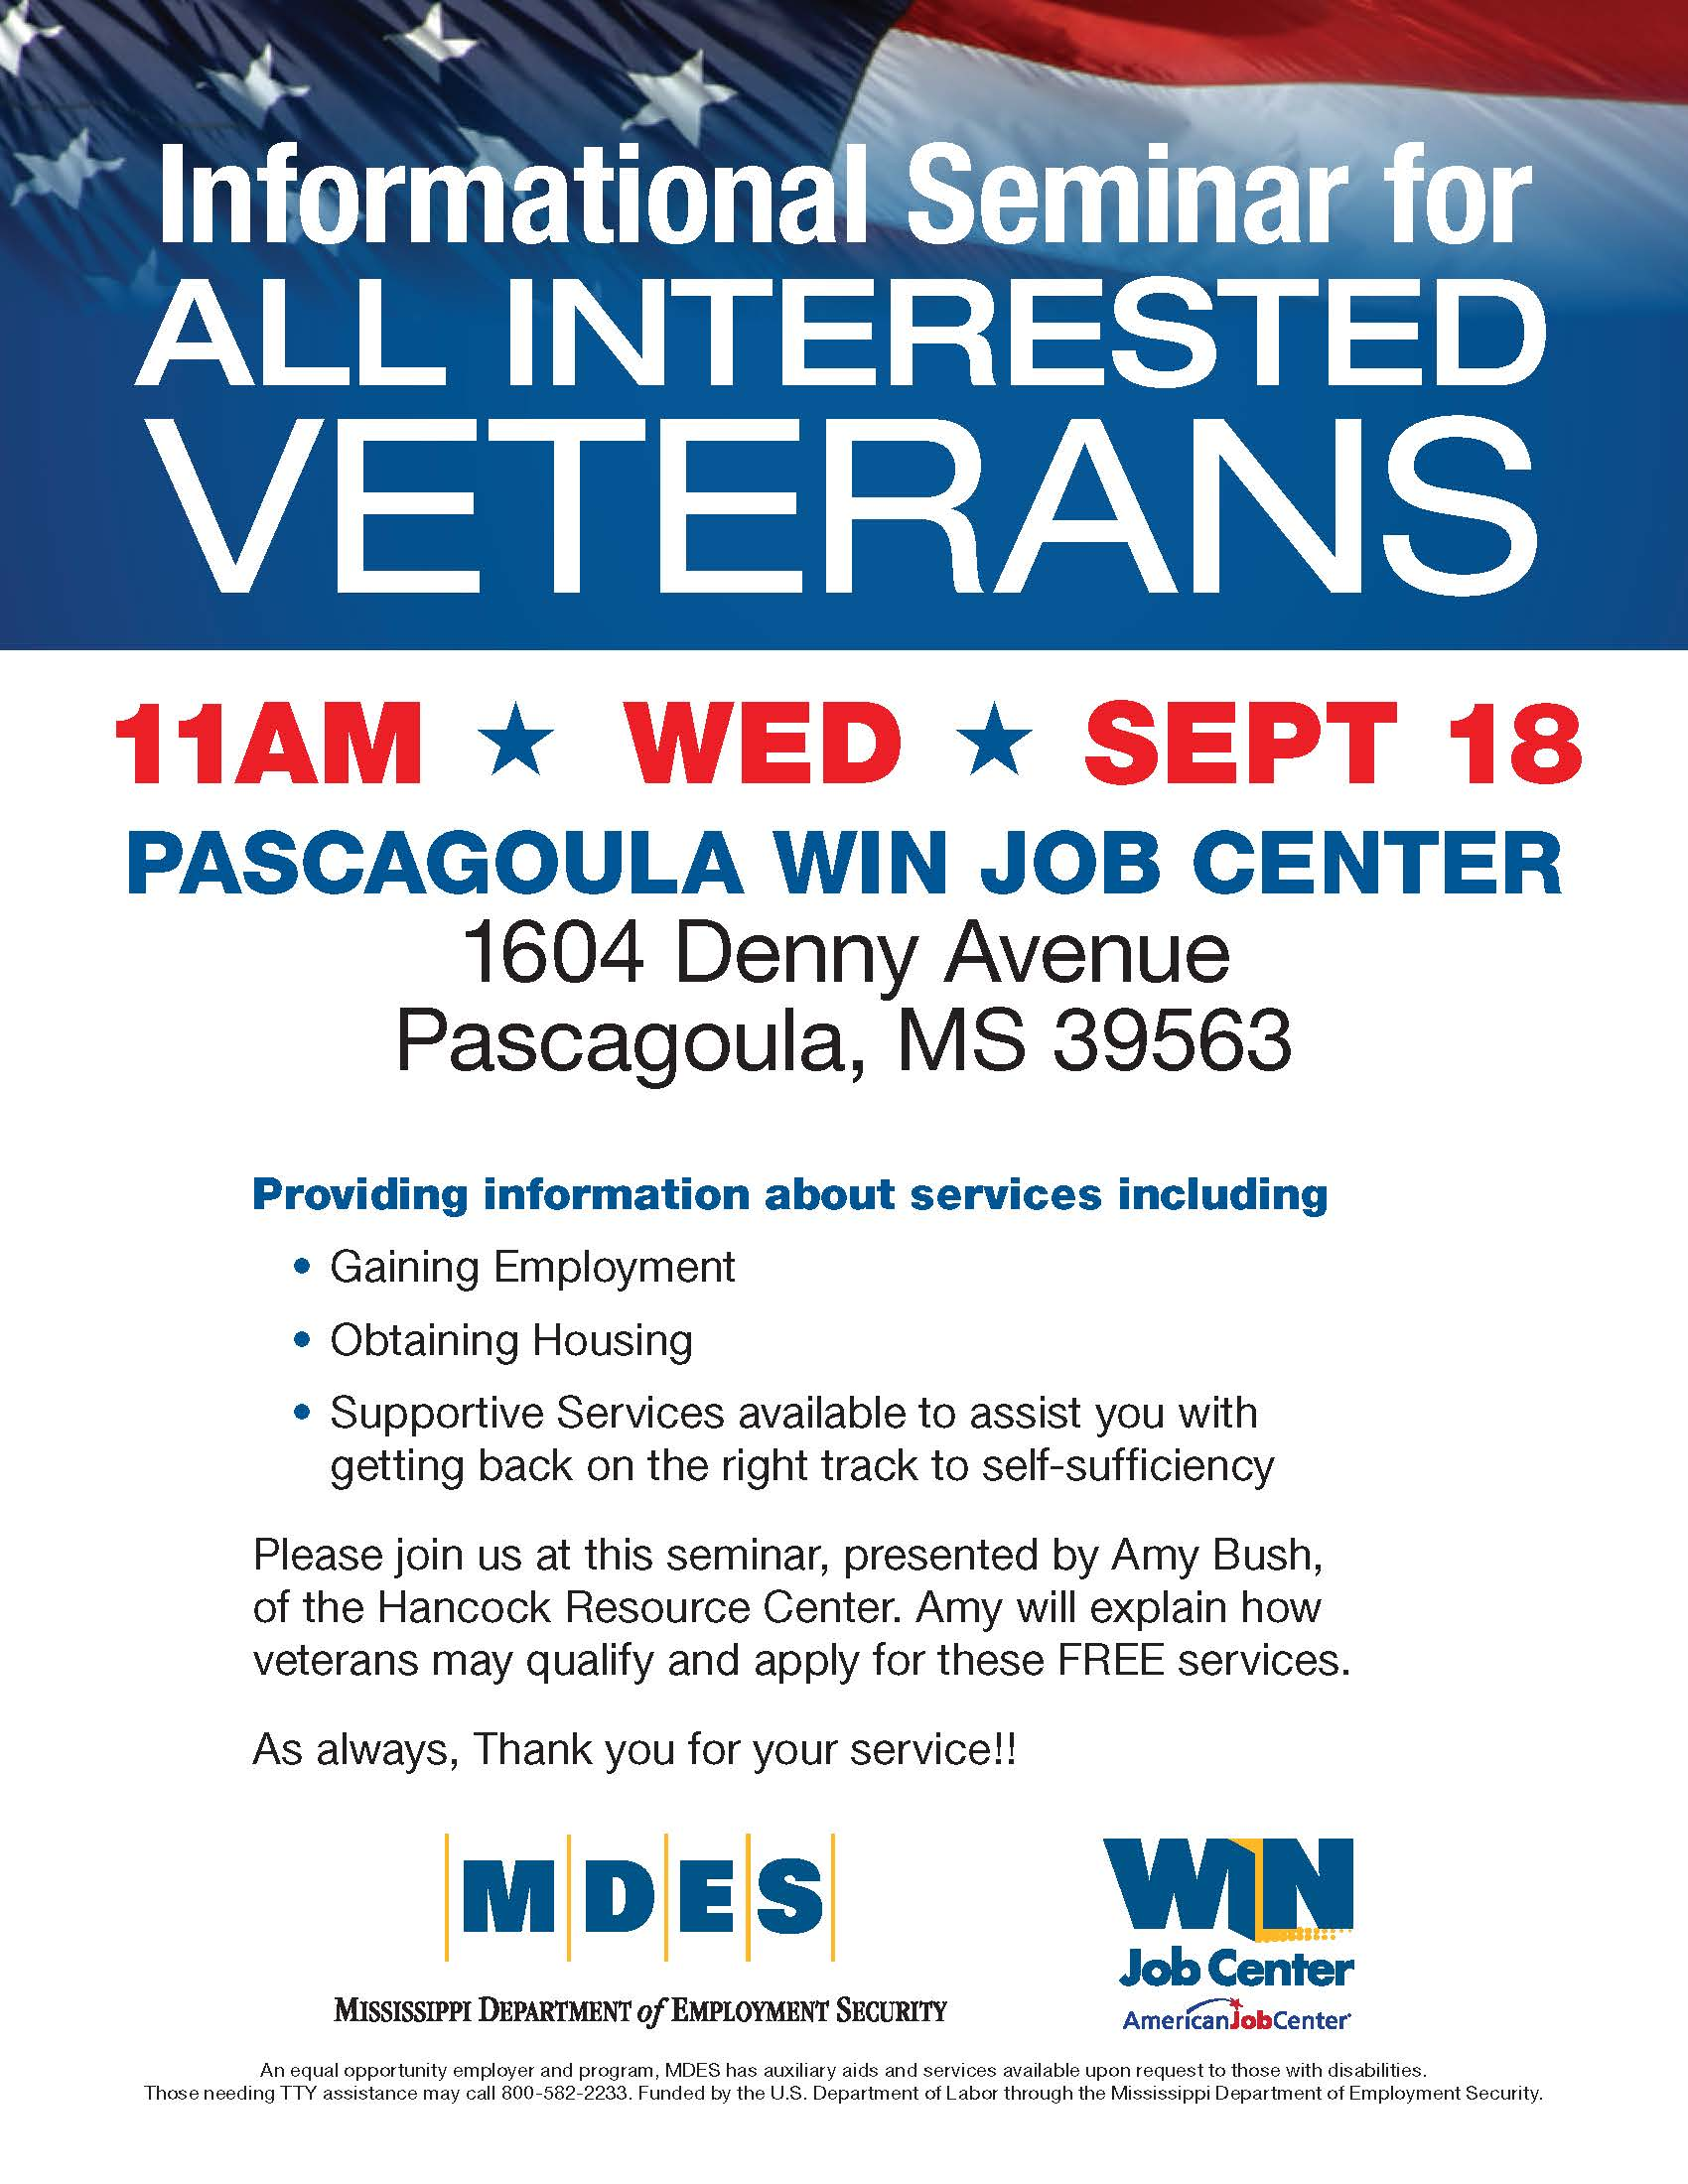 VeteransTrainingEvent Sept 18